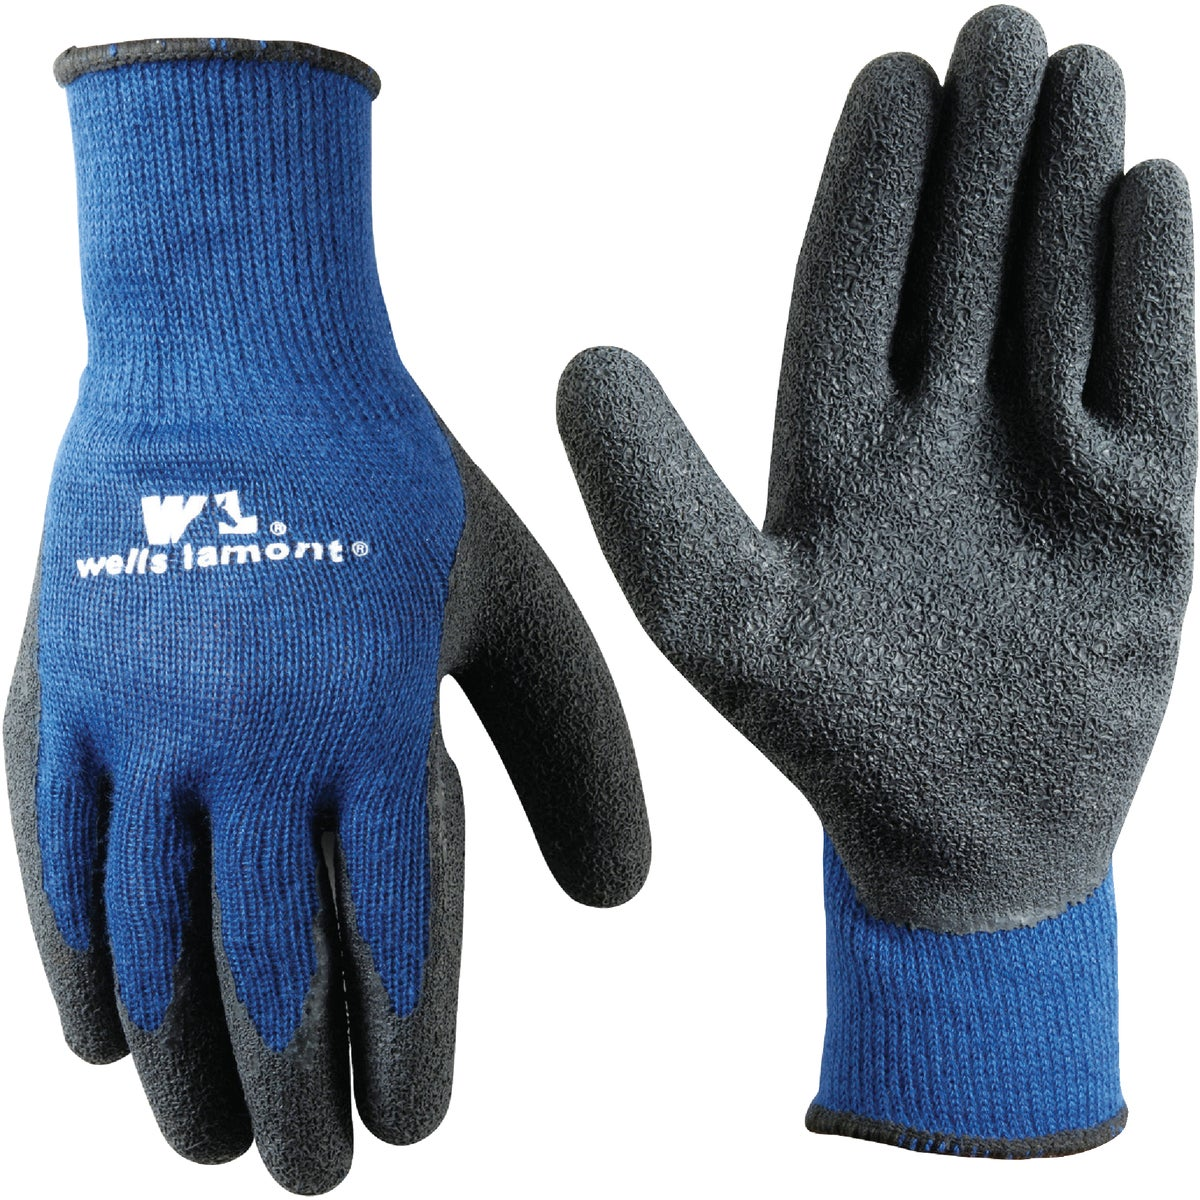 LG LATEX COATED GLOVE - 524L by Wells Lamont